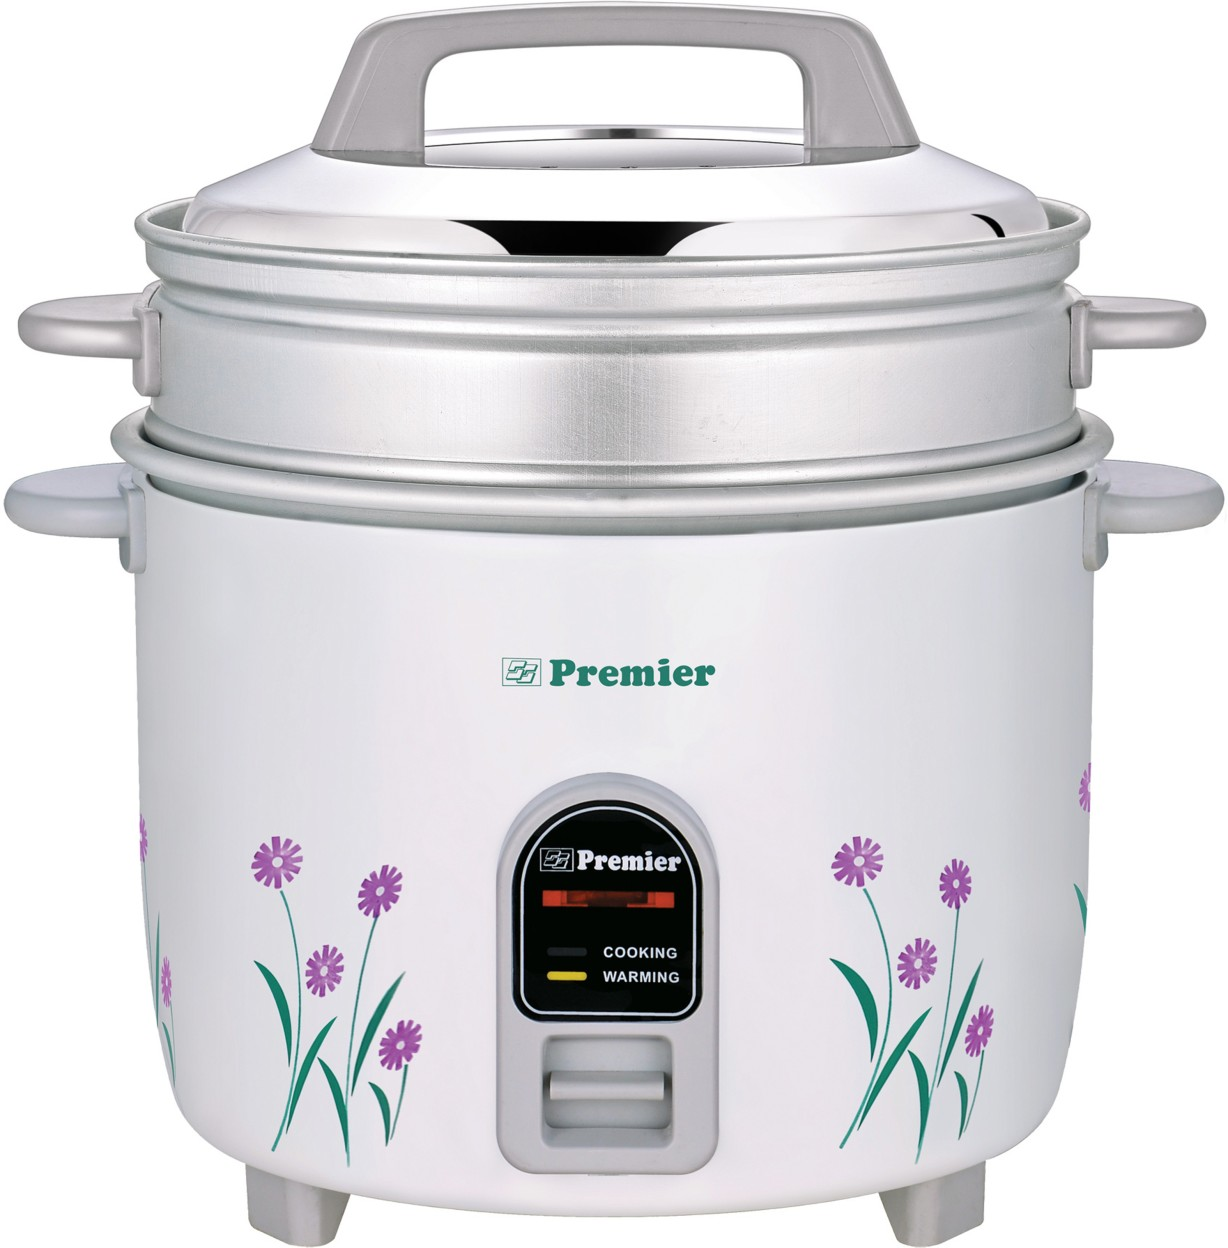 Merveilleux ... Premier ERC22ES Electric Rice Cooker With Steaming Feature (2.2 L,  White) Image 2 ...